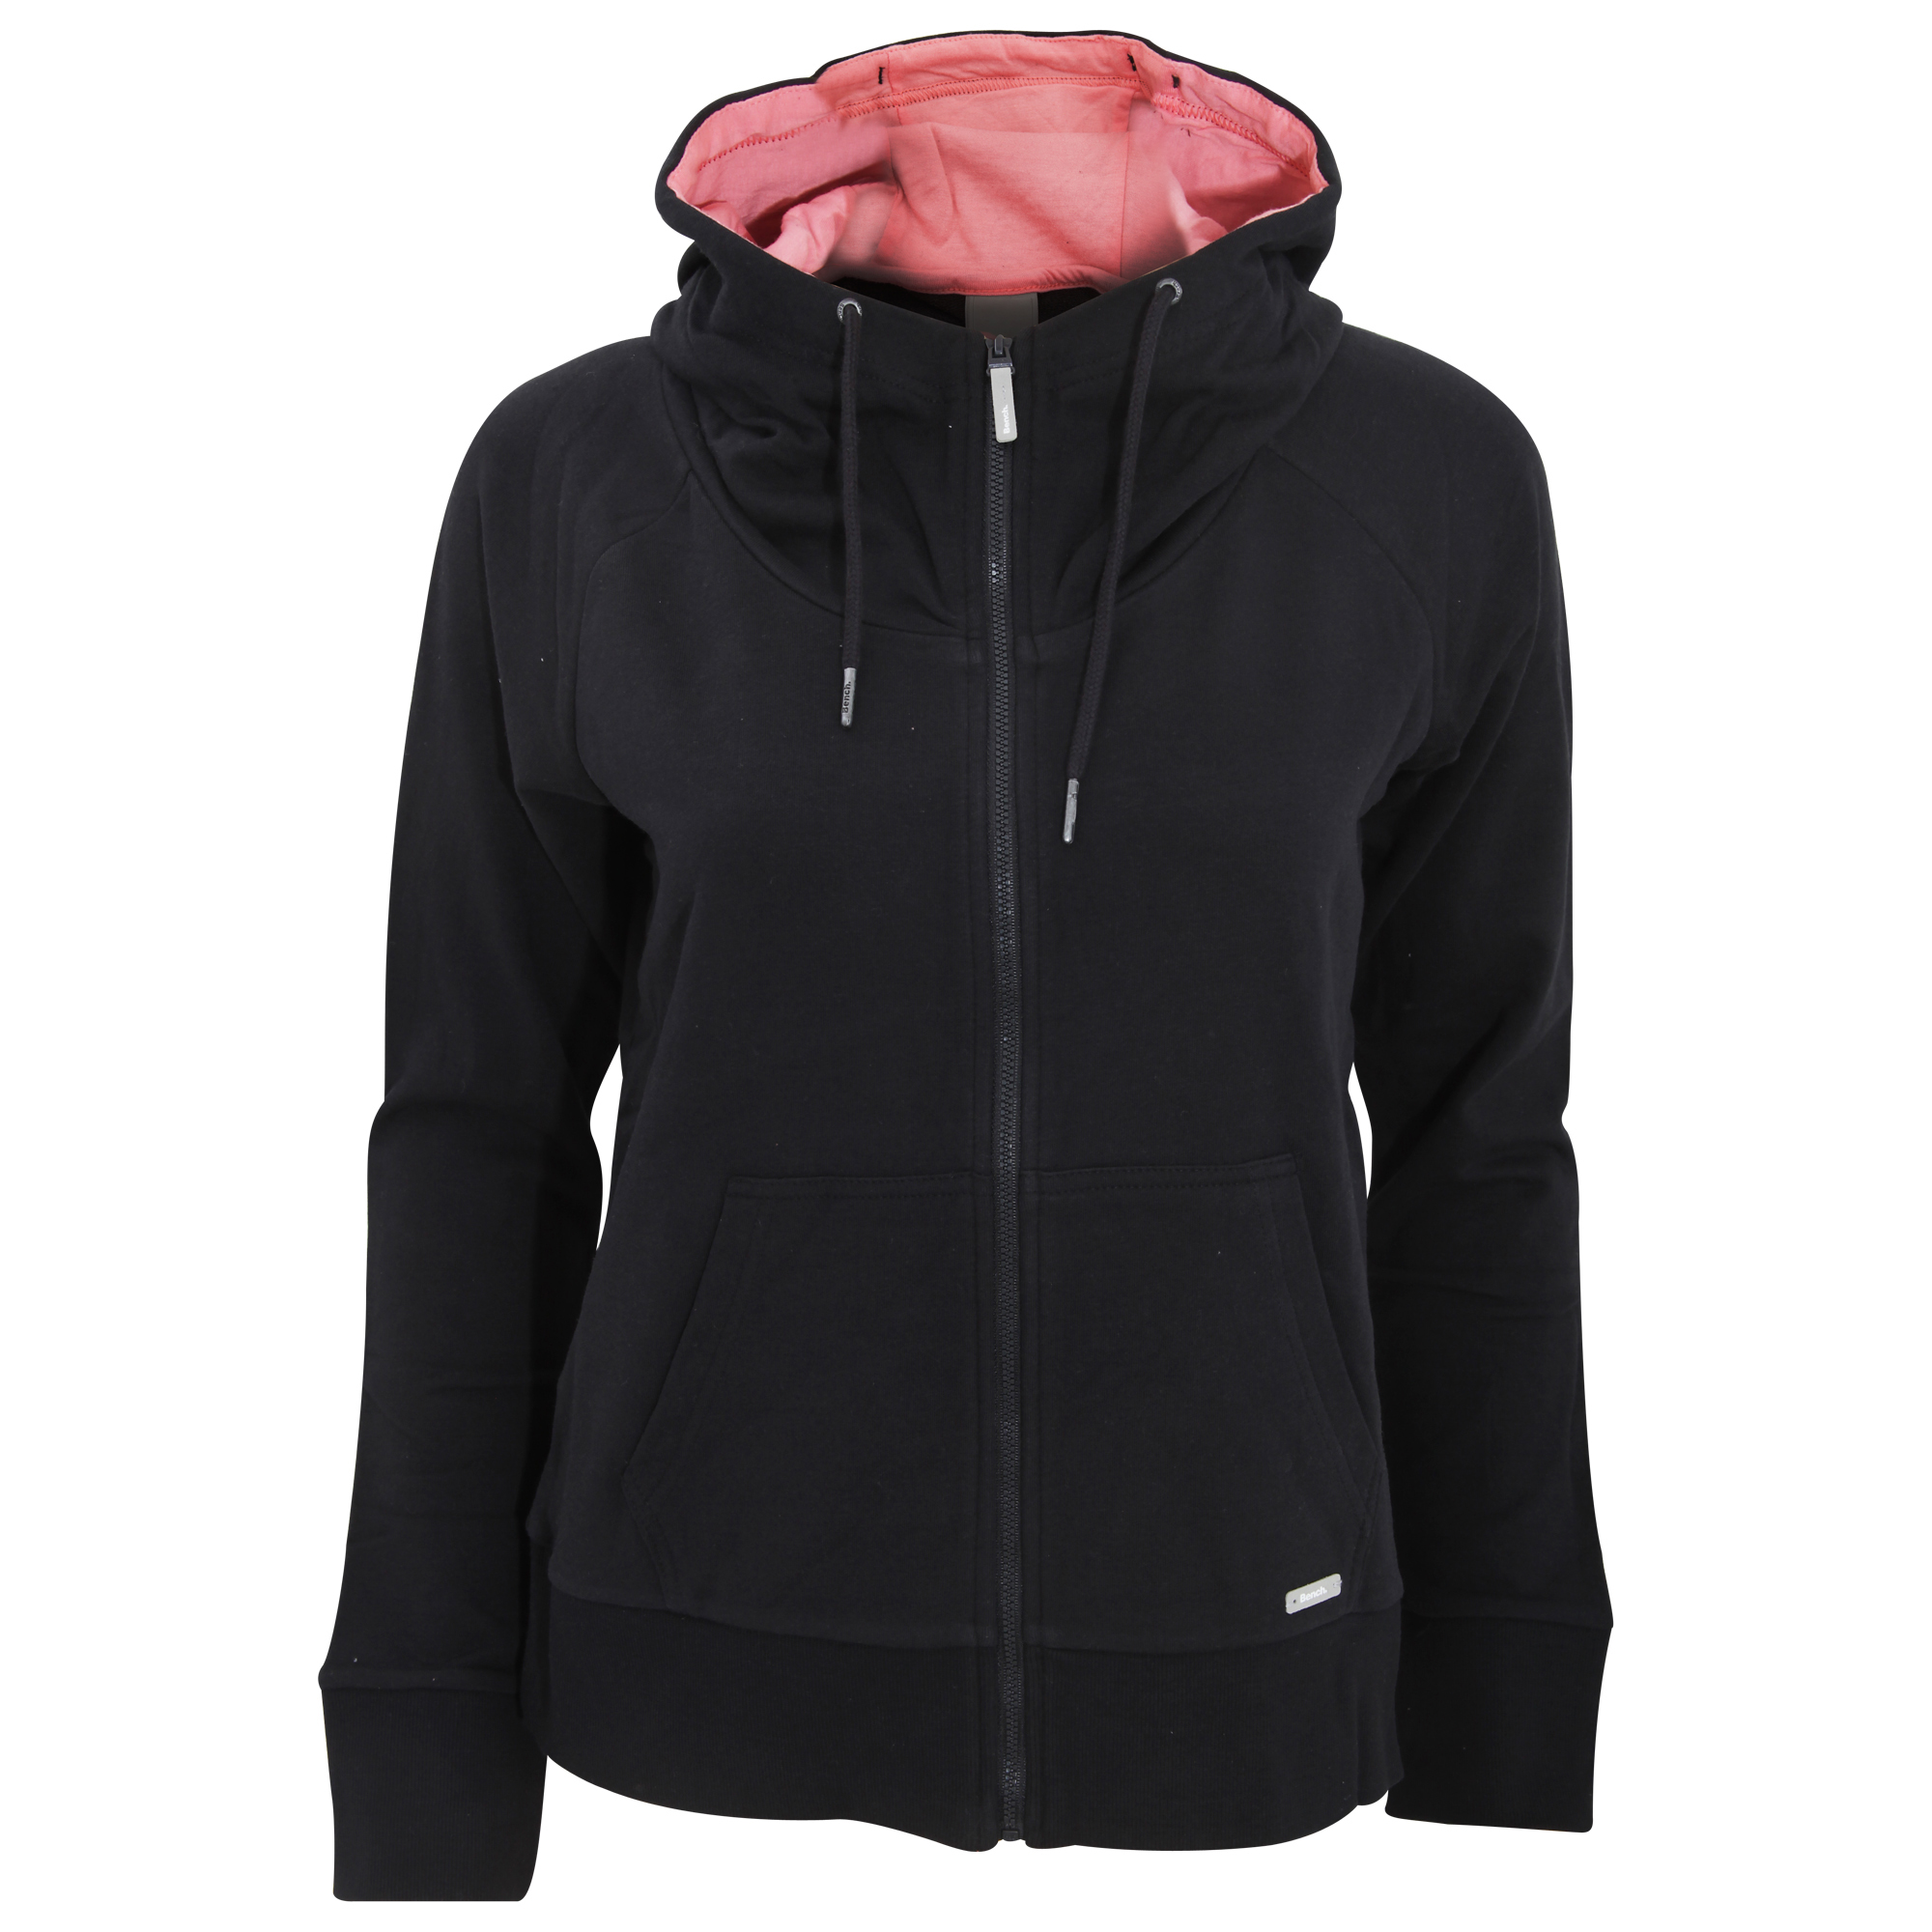 Find great deals on eBay for zip up jackets for women. Shop with confidence.